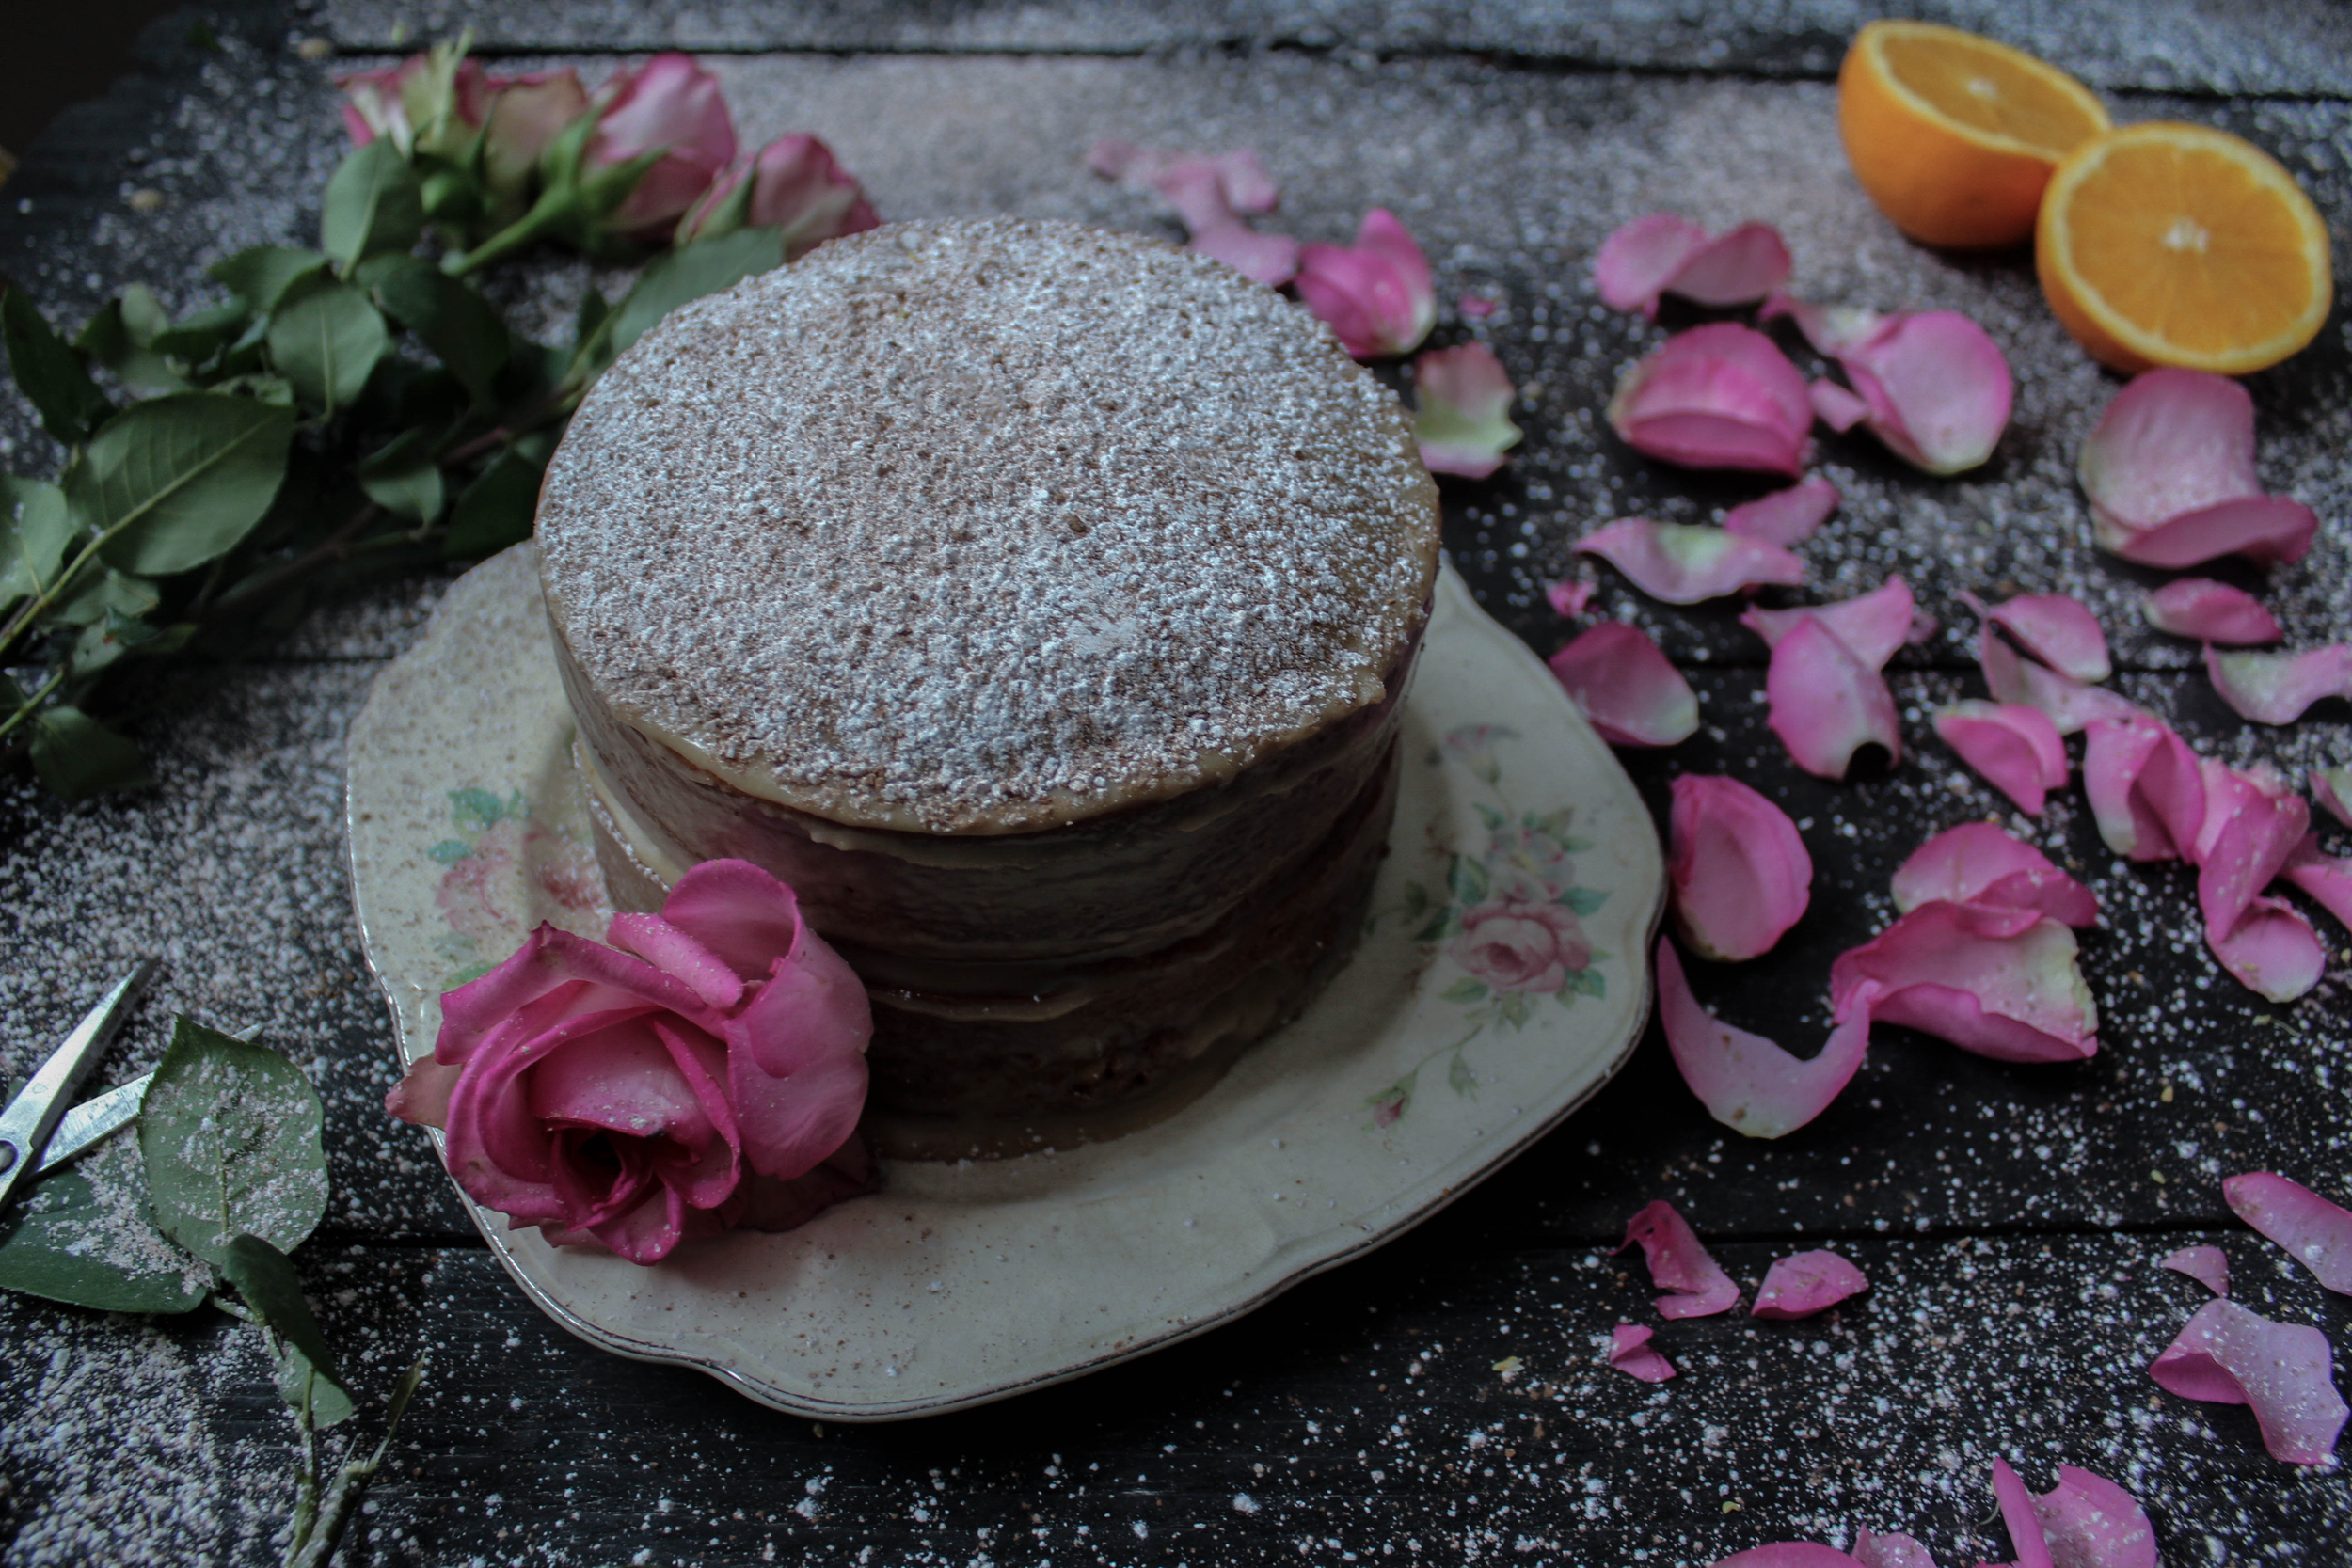 Orange Marmalade Cake with Tahini Frosting